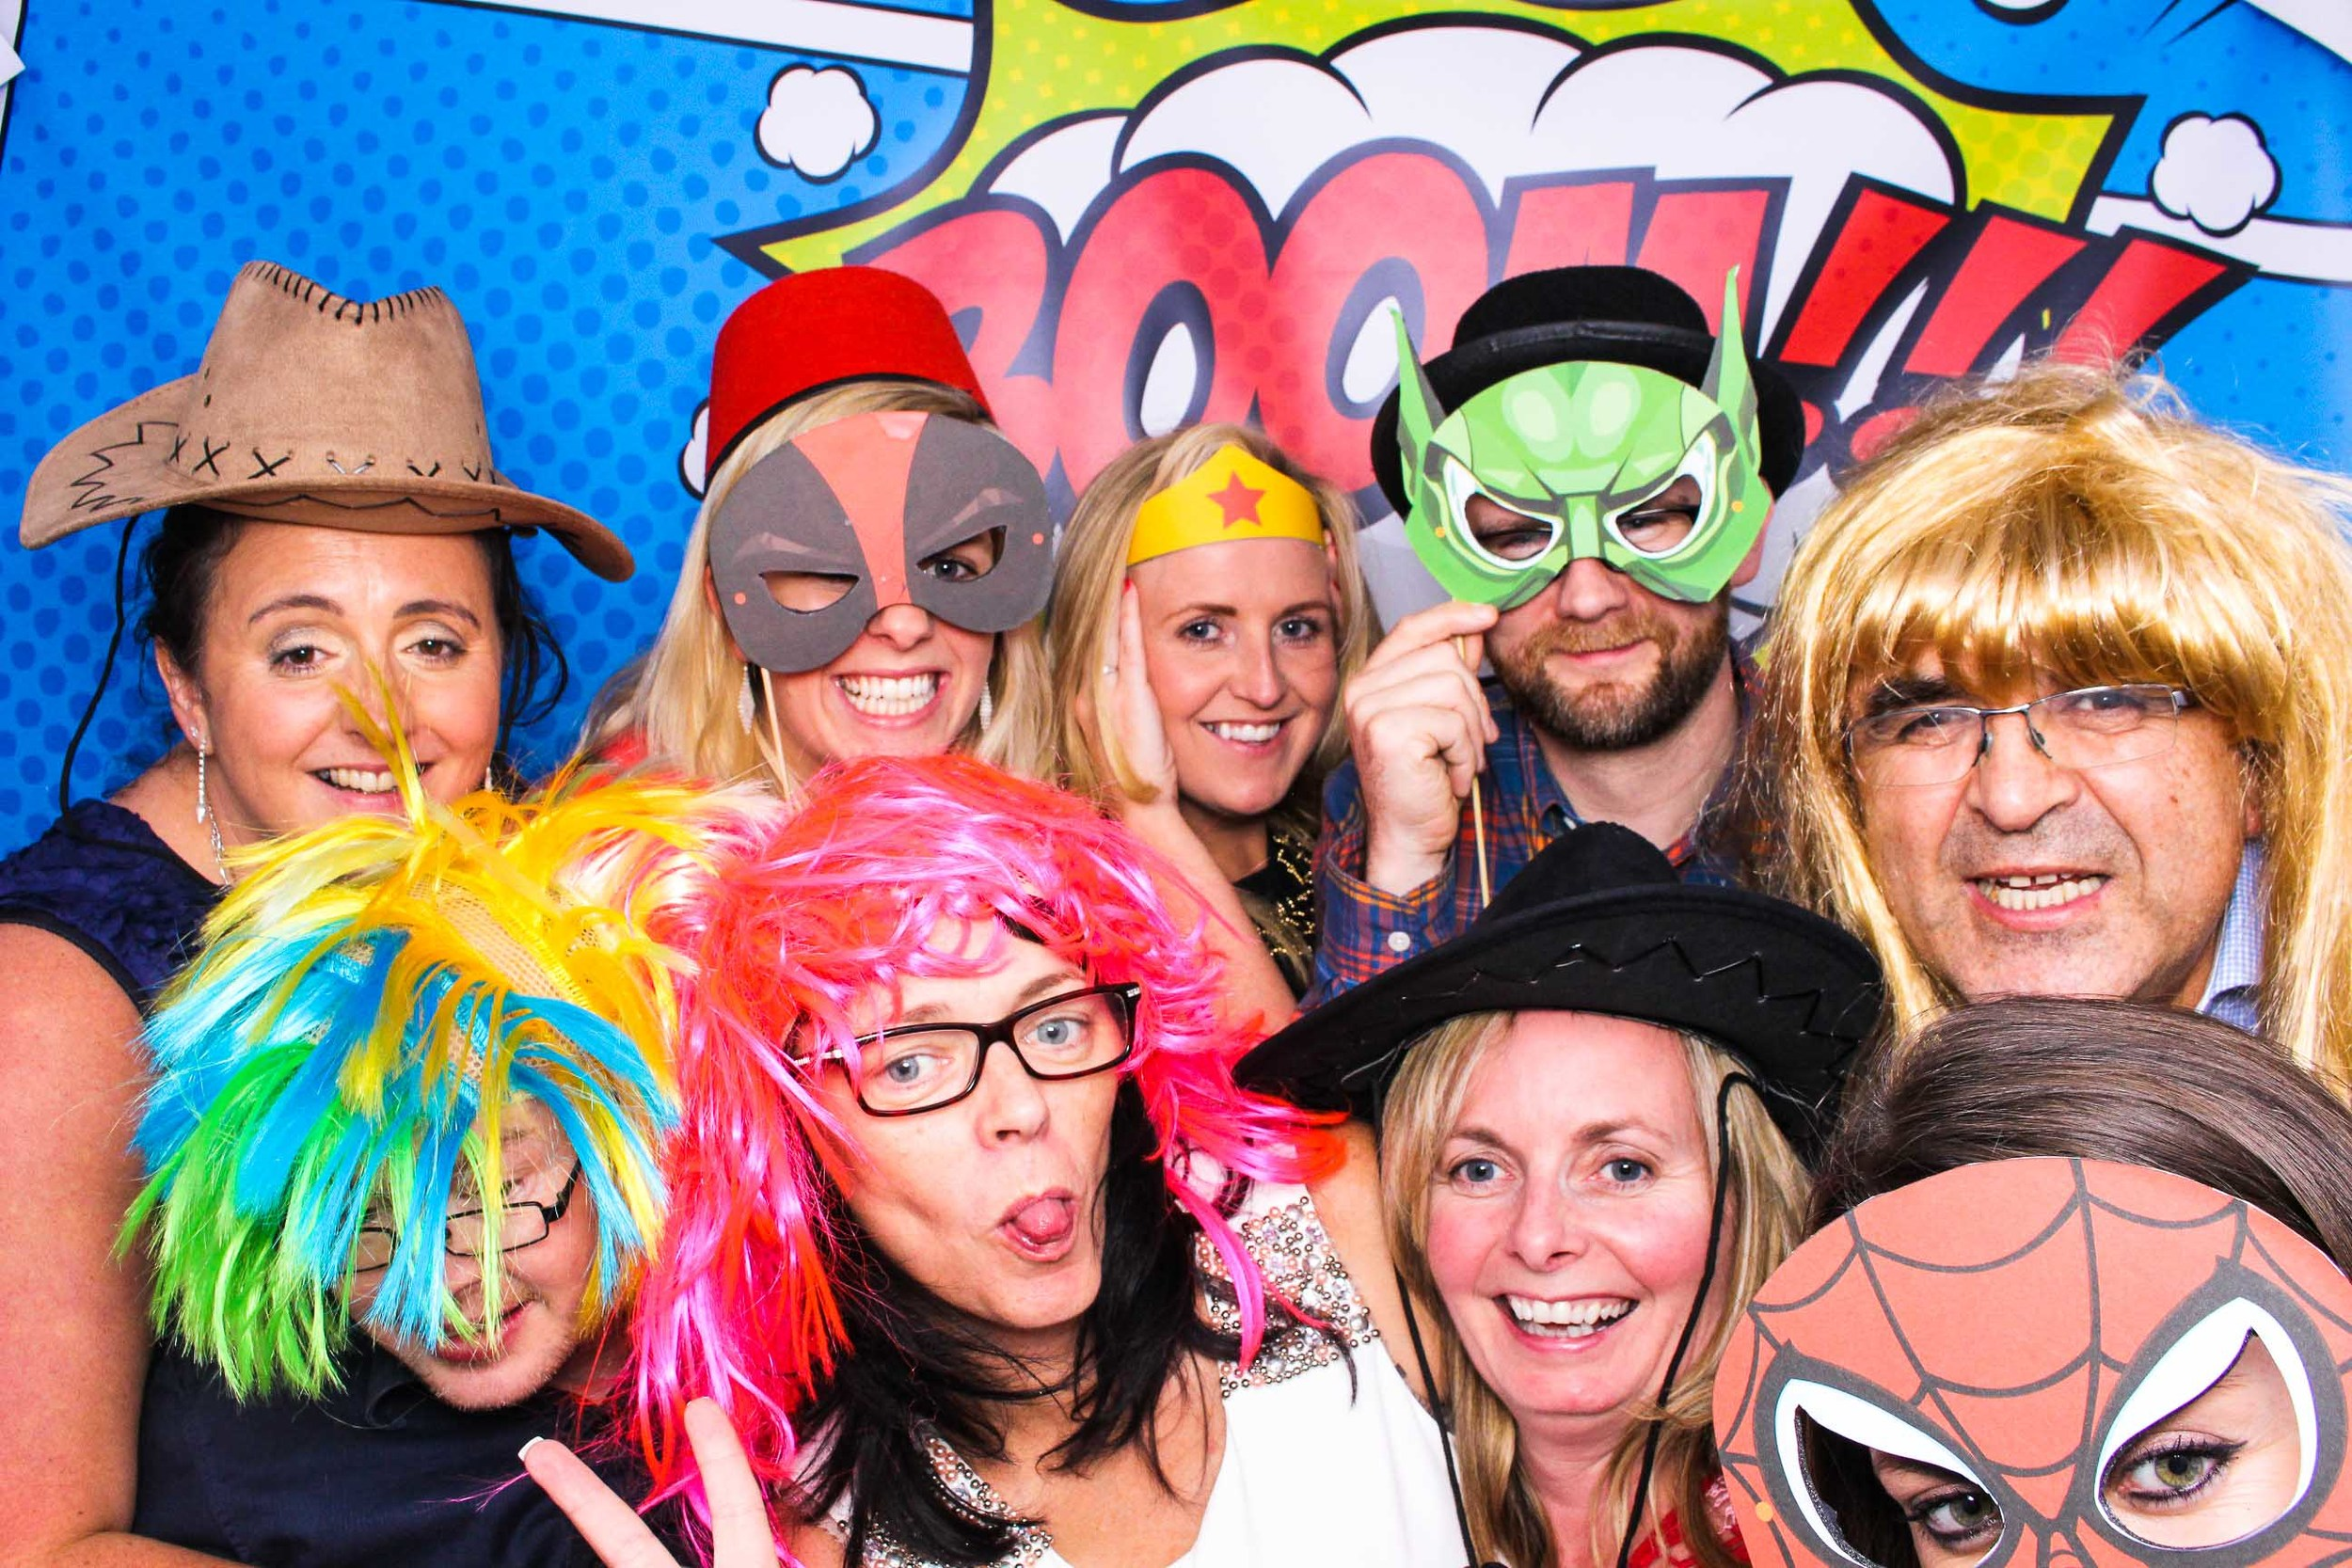 Fotoauto Photo Booth Hire - Shop Direct-174.jpg